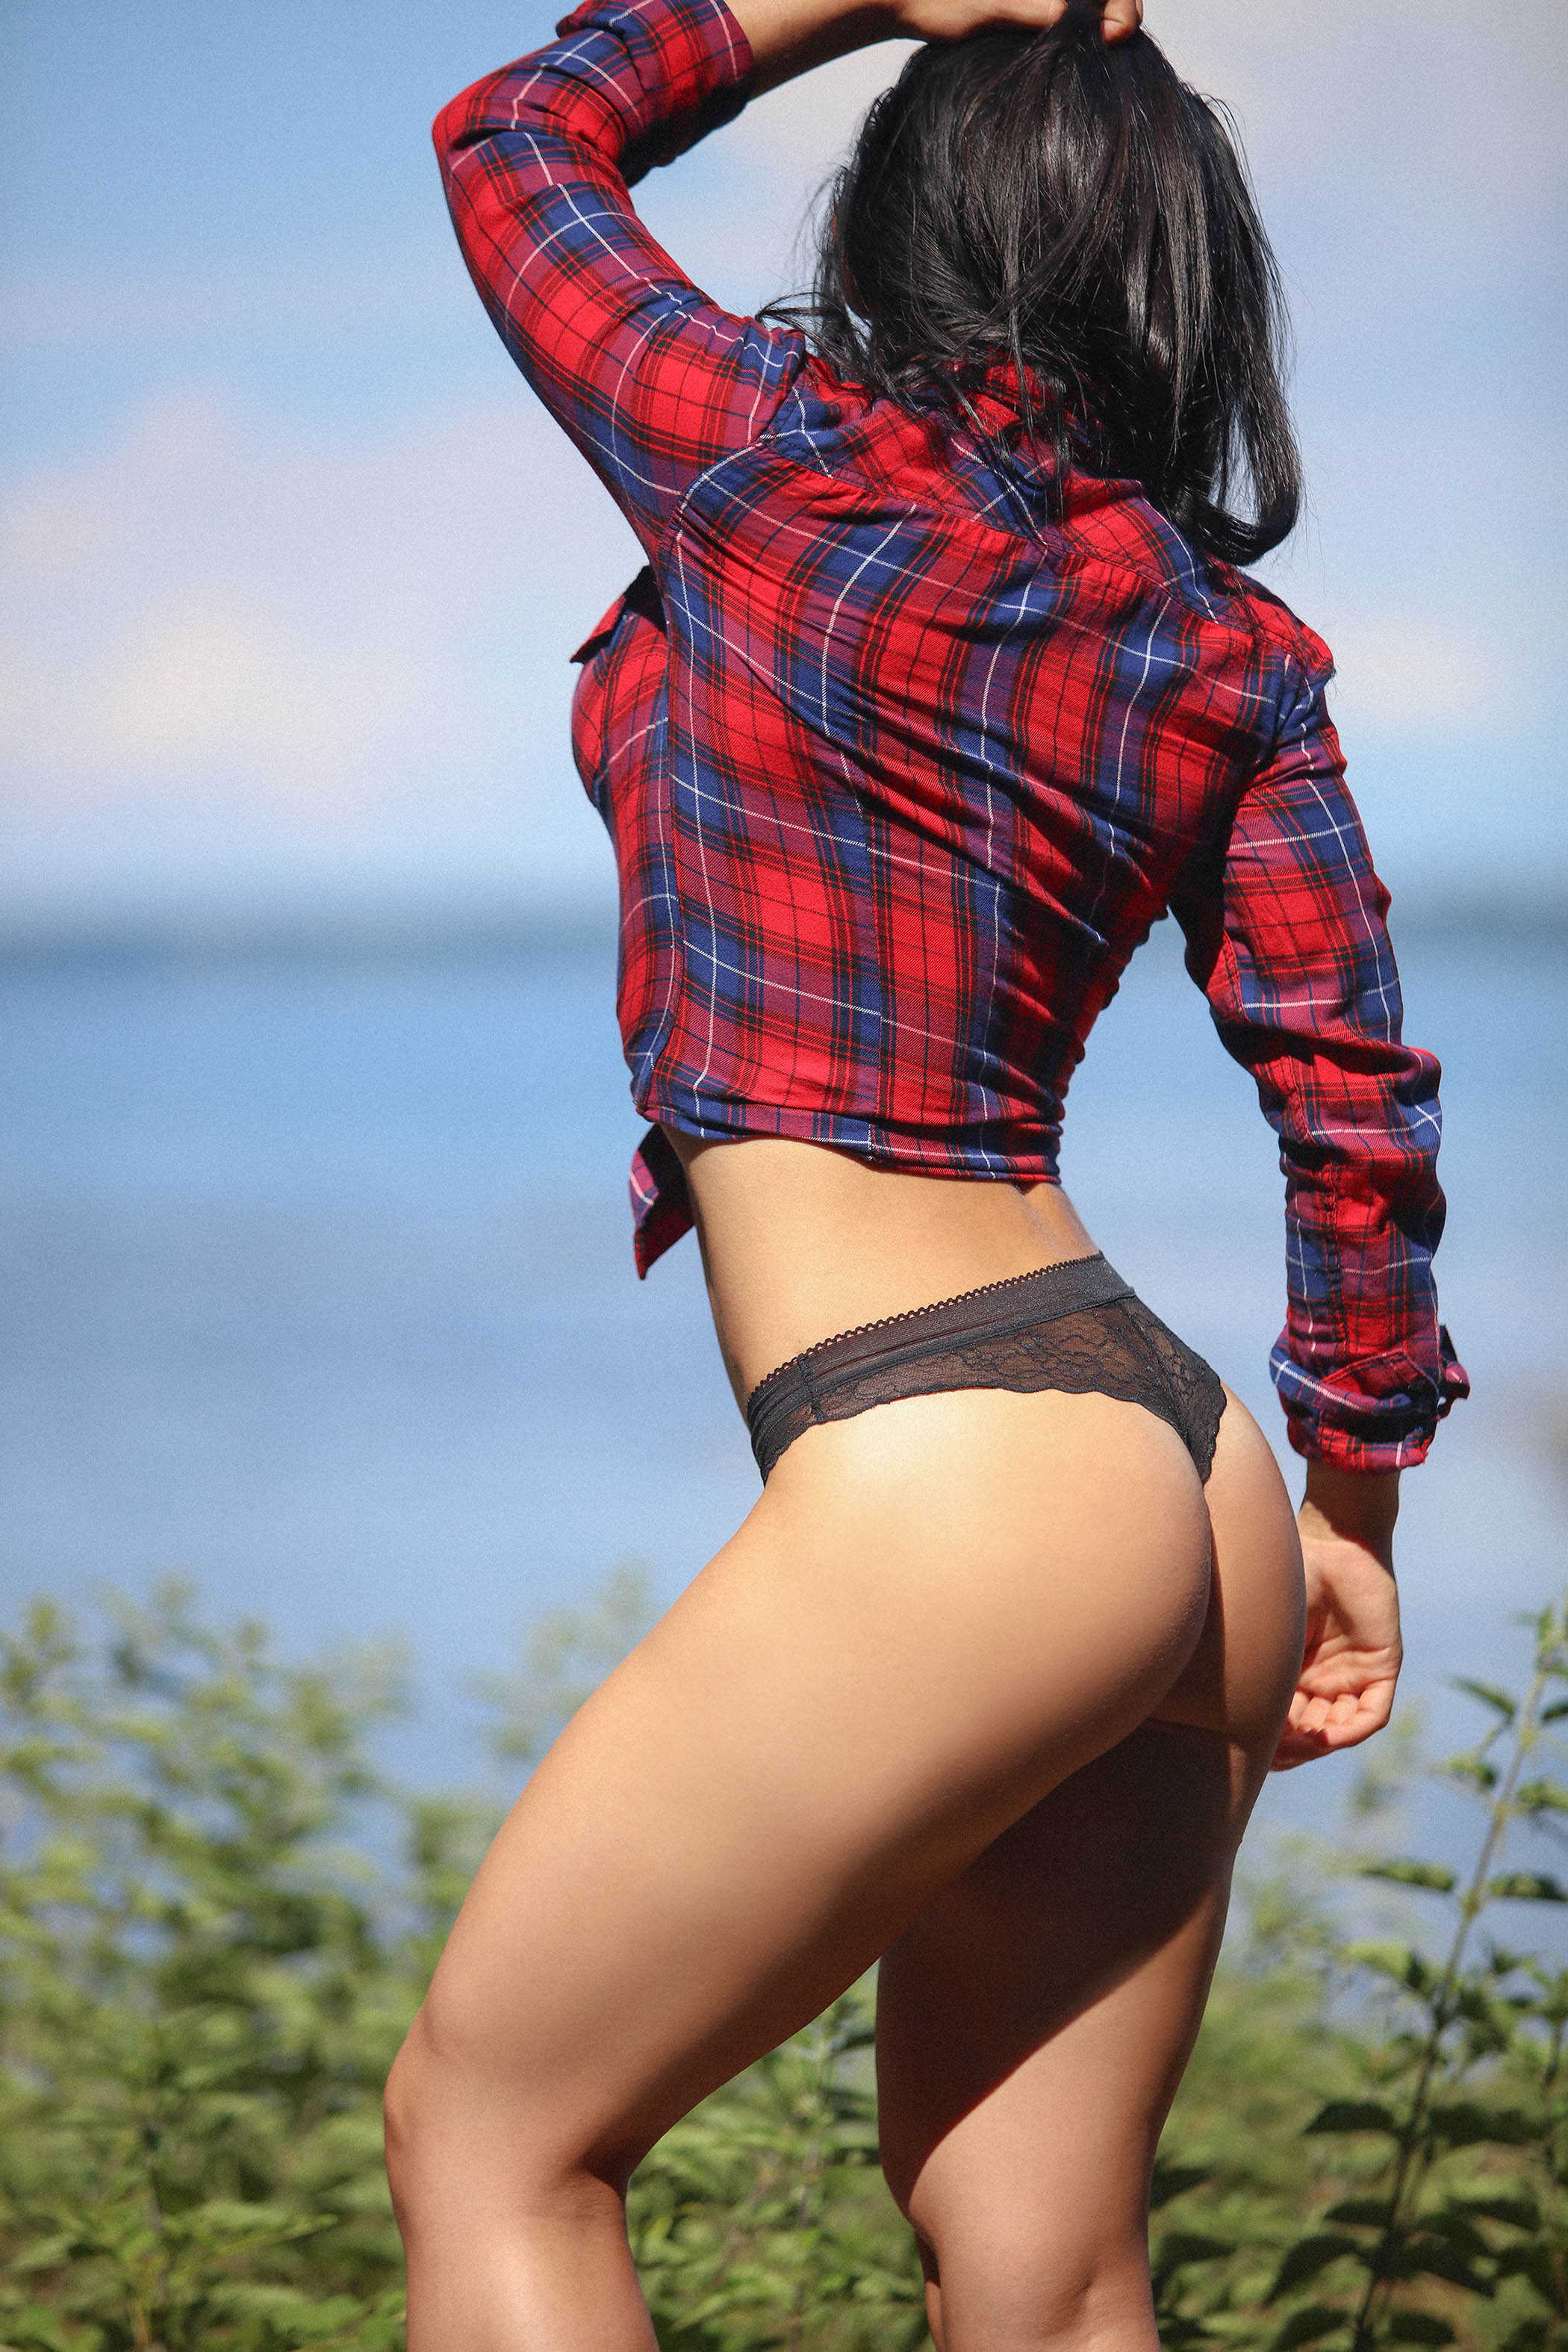 bruna-paris-escorte-girl-escort-geneve-lausanne.jpg